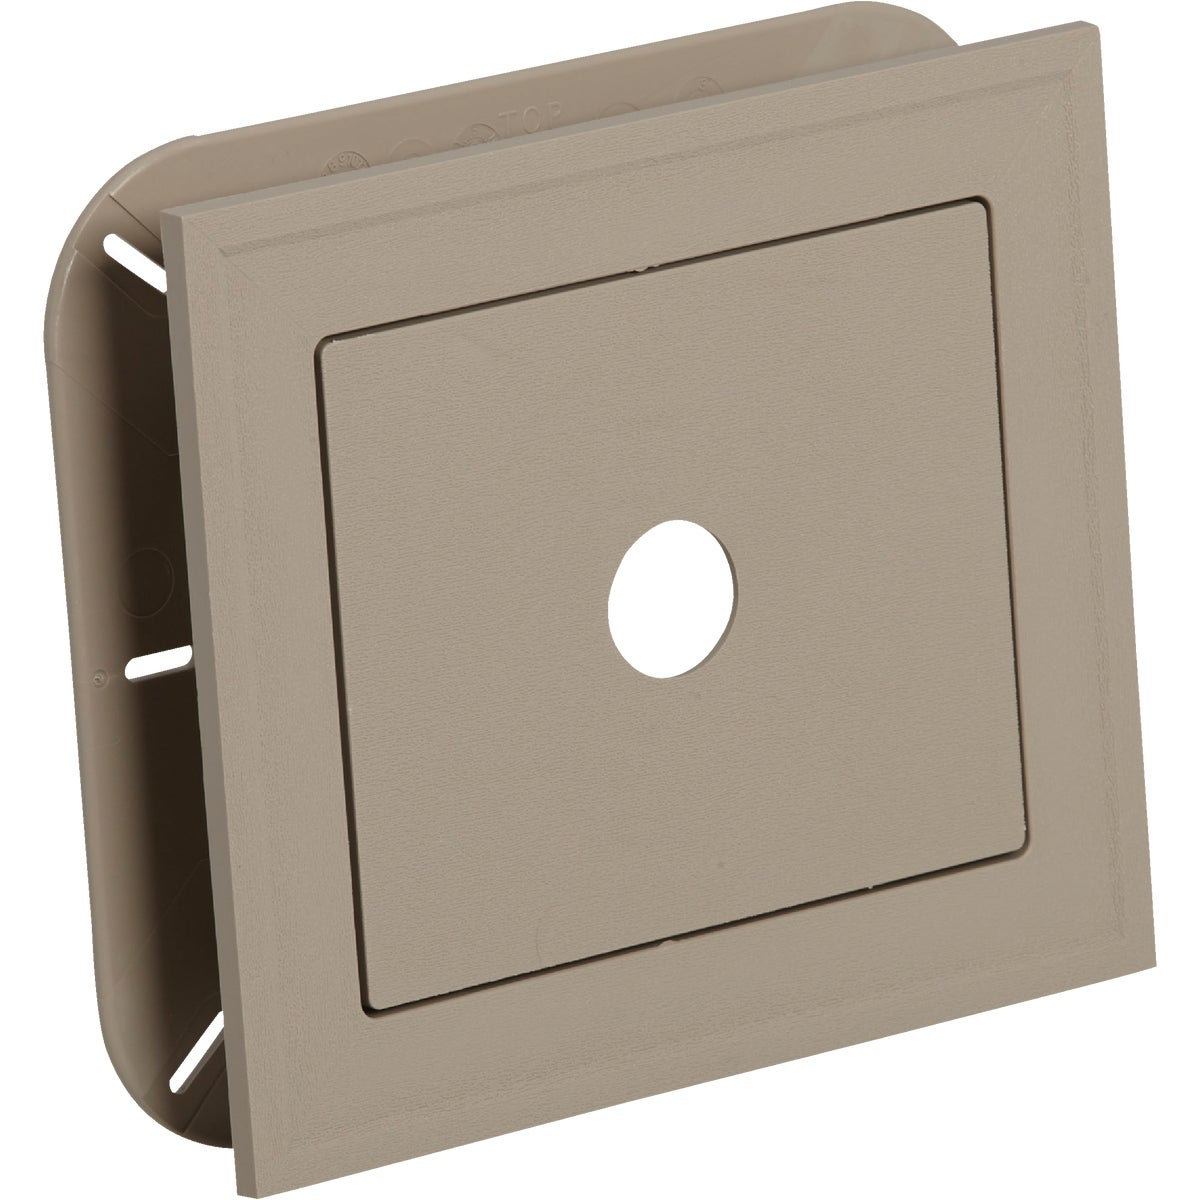 CLAY UNIVERSAL J-BLOCK - UNIBLOCK PC by Alcoa Home Exteriors